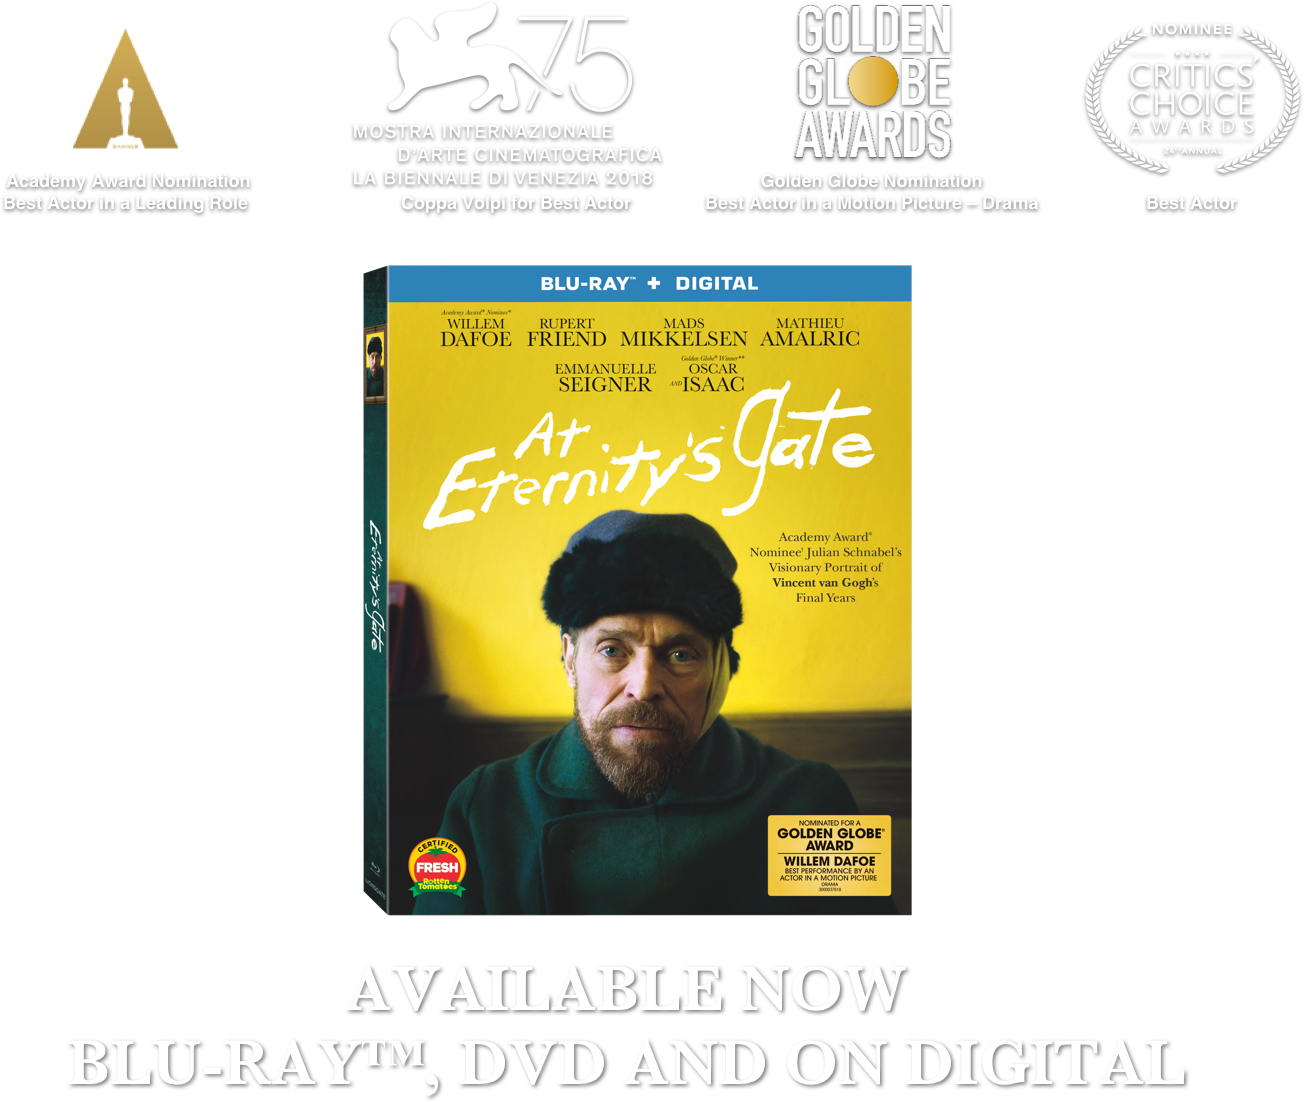 At Eternity's Gate: Synopsis | CBS FILMS INC